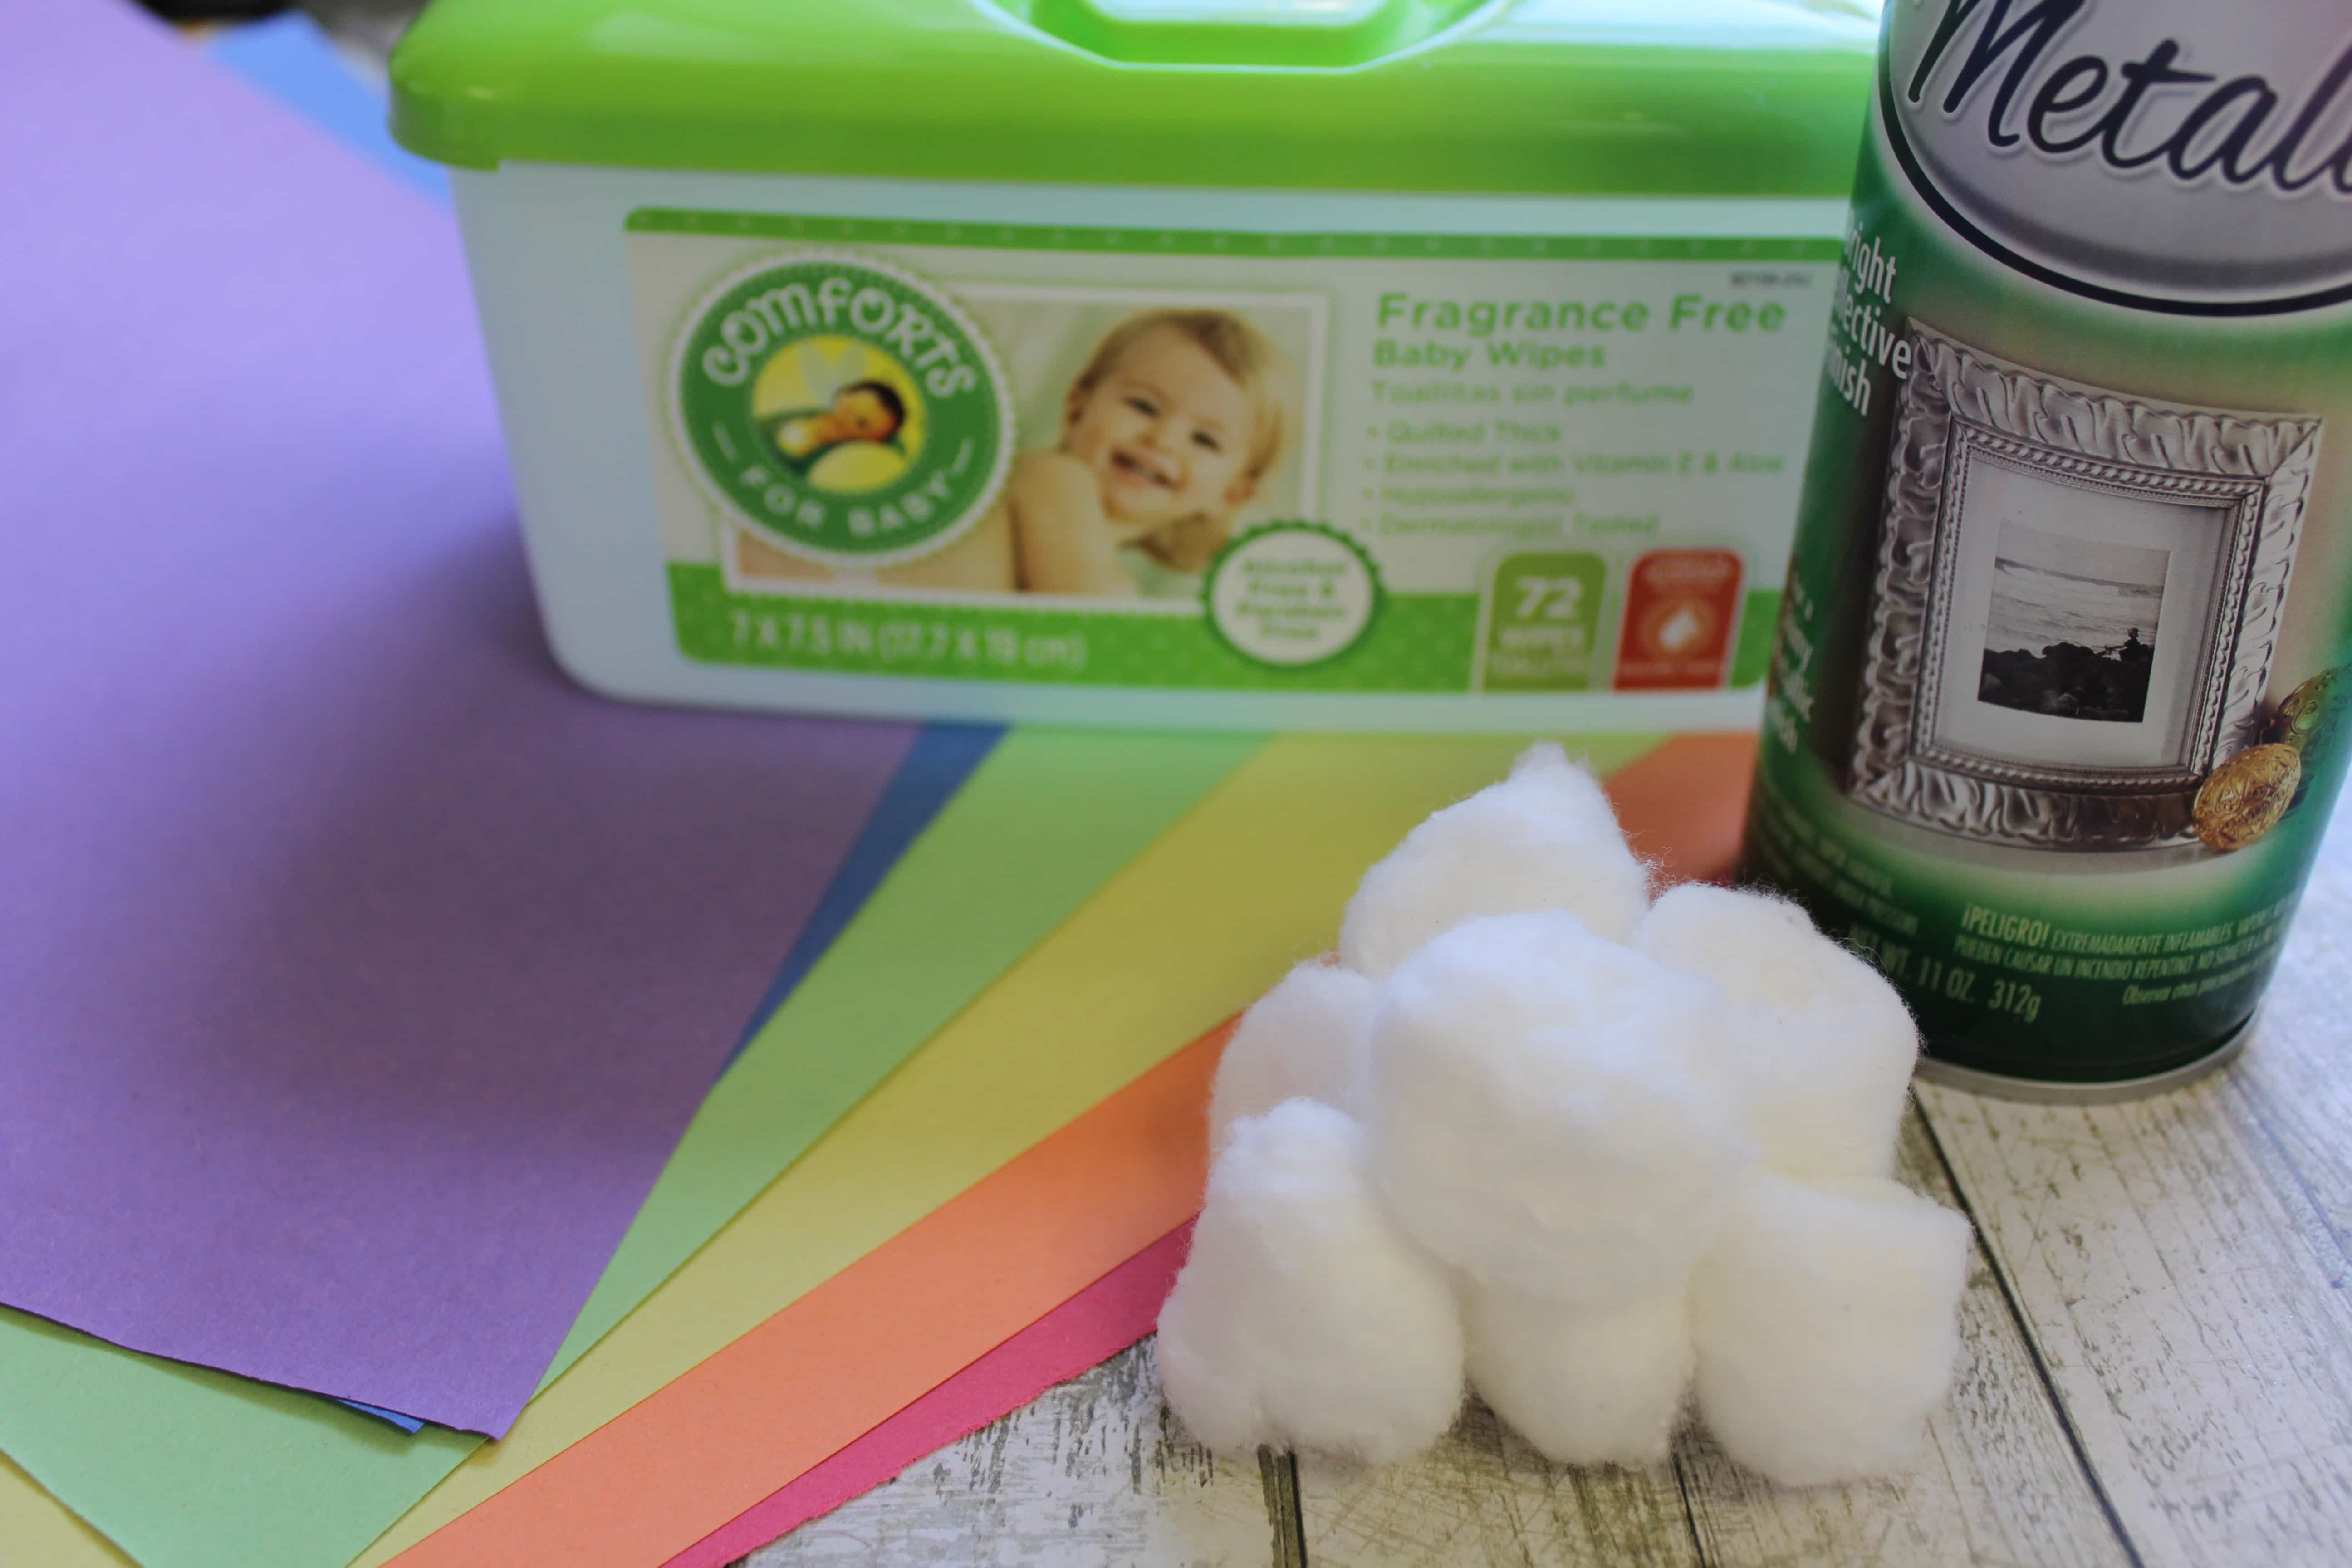 St. Patrick's Day Leprechaun Trap Craft for Kids materials